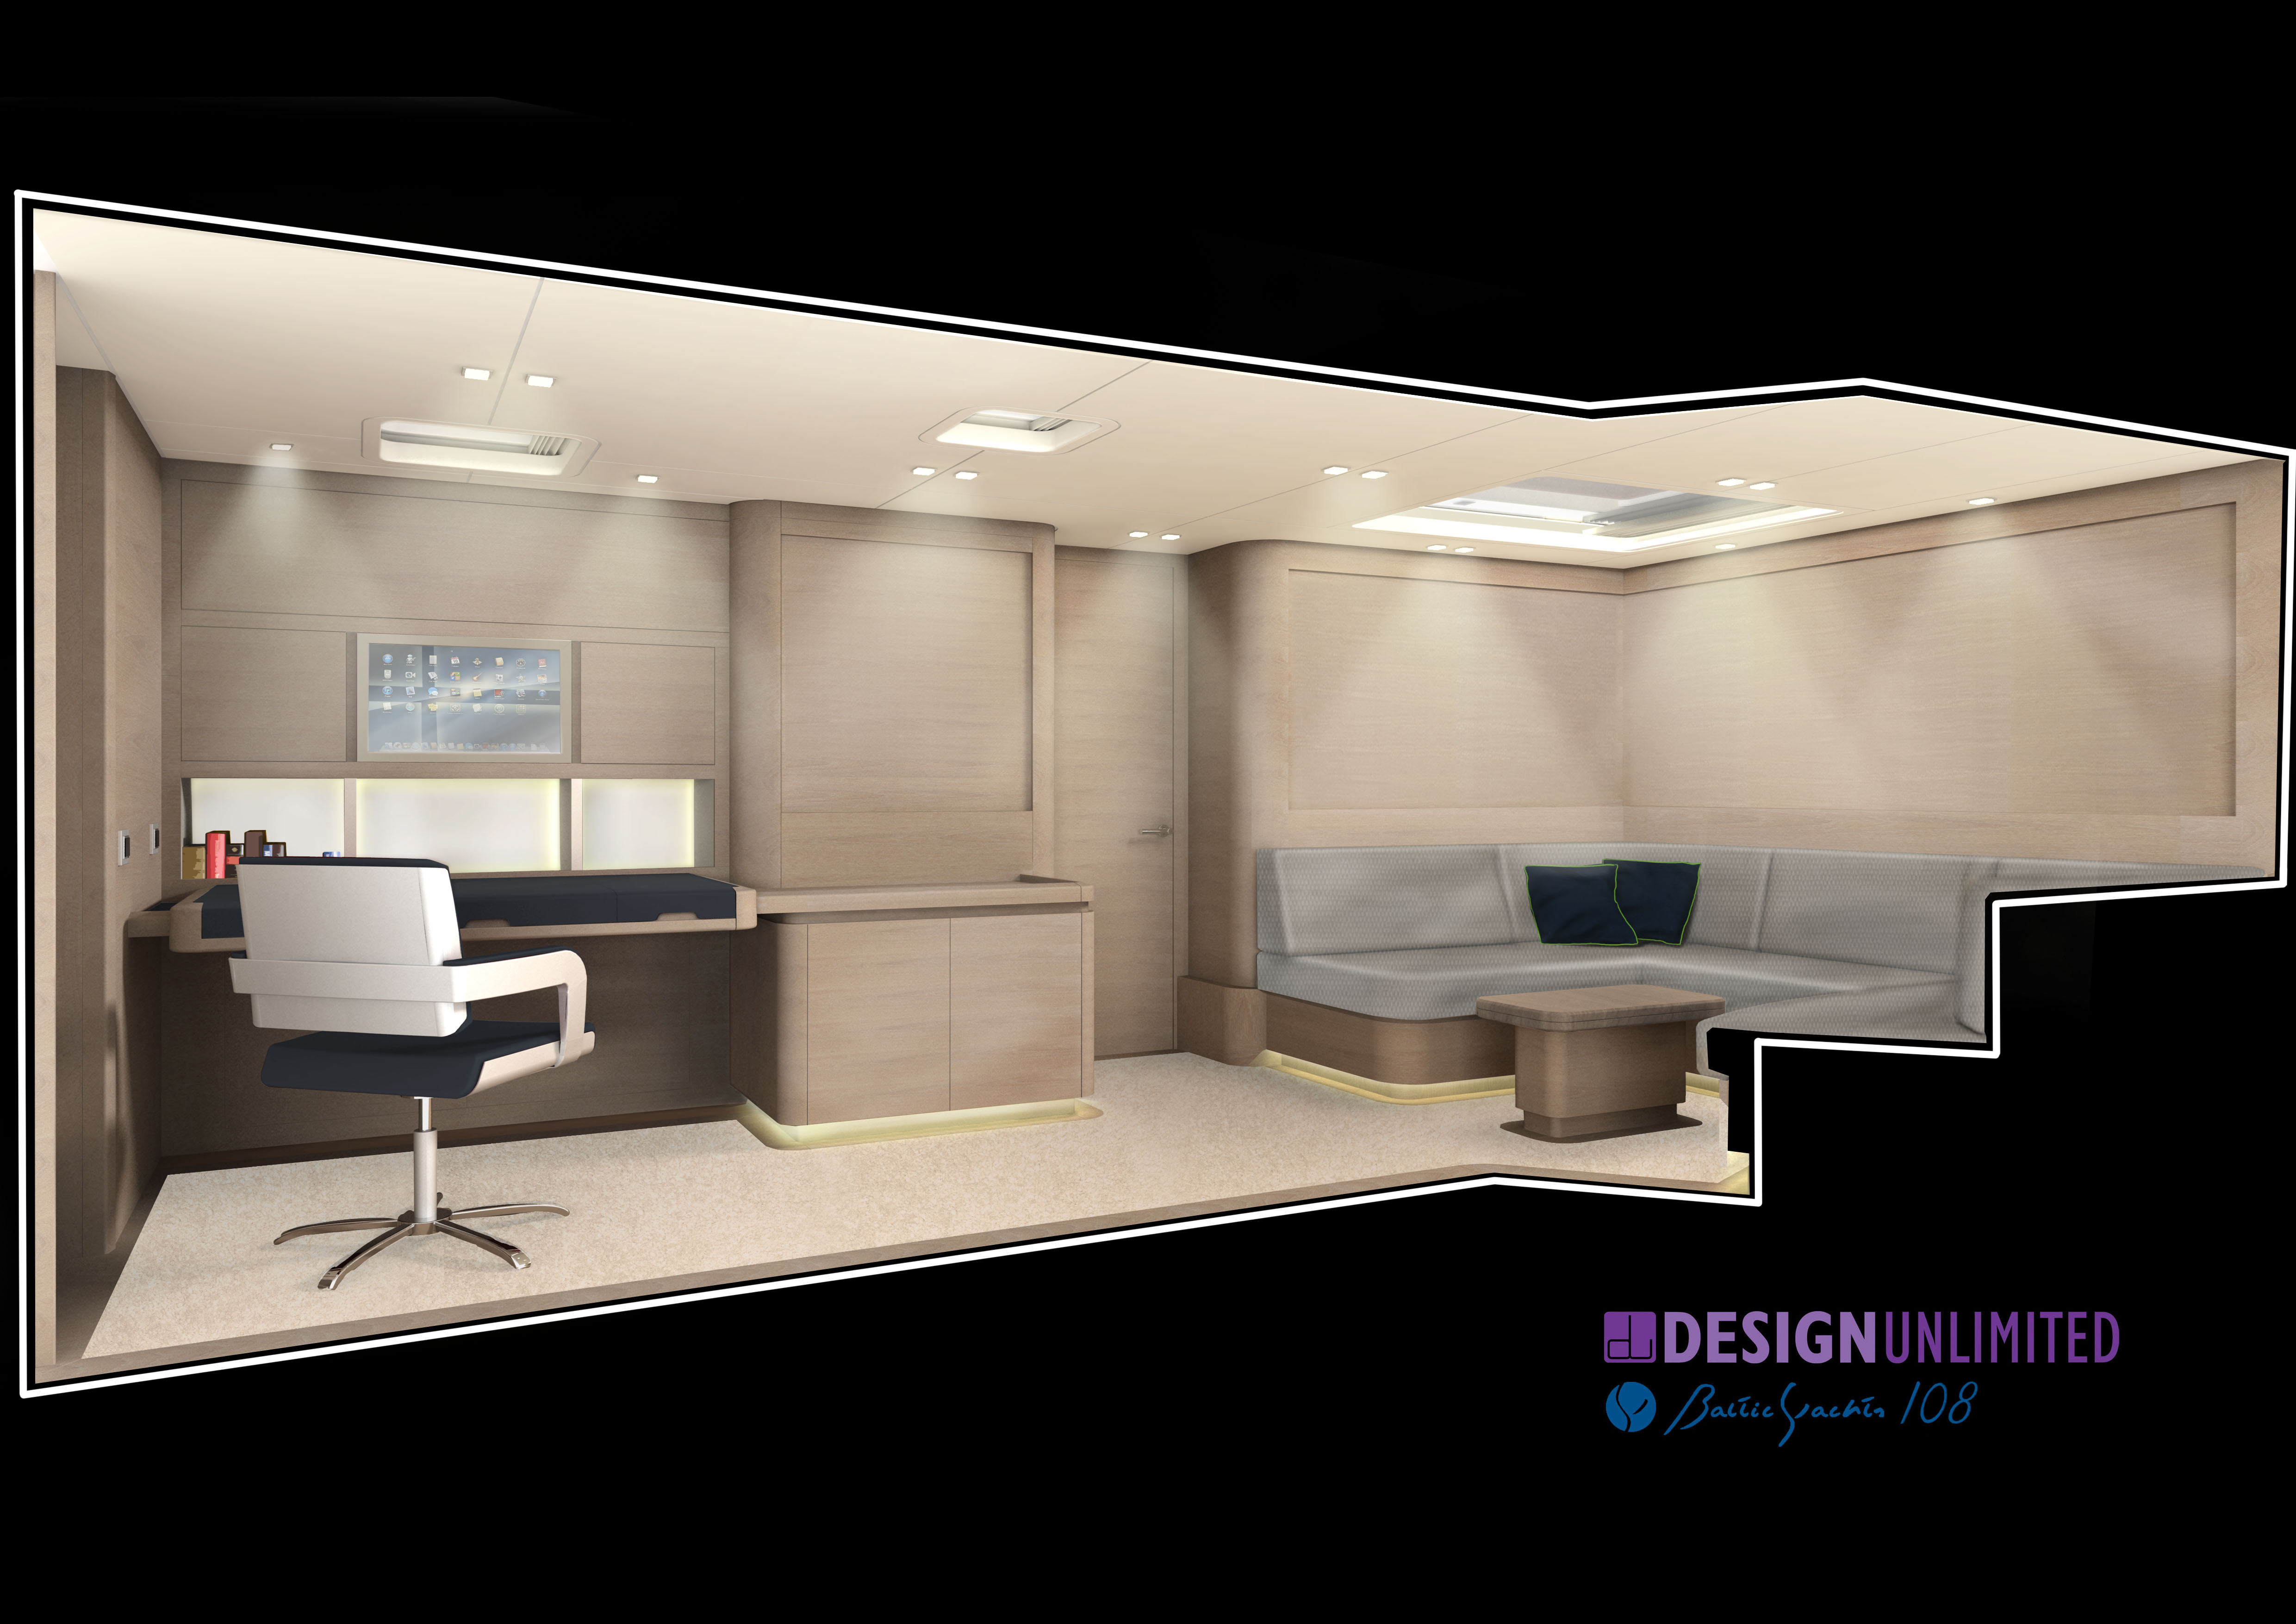 Baltic yachts 108 winwin superyacht study yacht for Interior designs unlimited